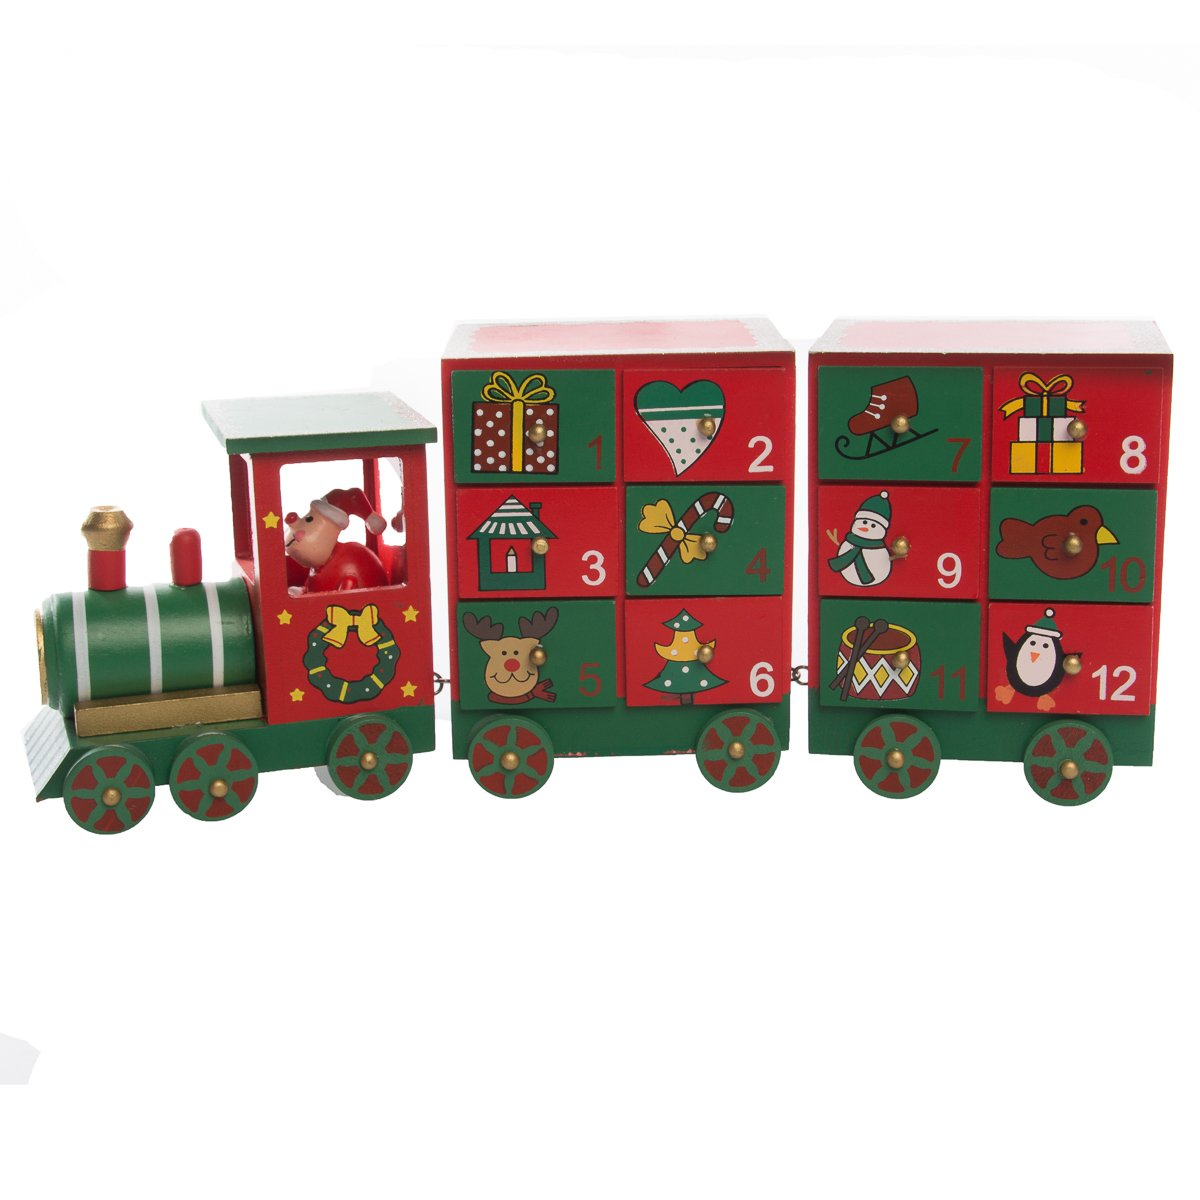 Hot Headz Wood Advent Calendar Drawers Christmas Holiday Train Set Reusable Daily Countdown by Hot Headz (Image #1)